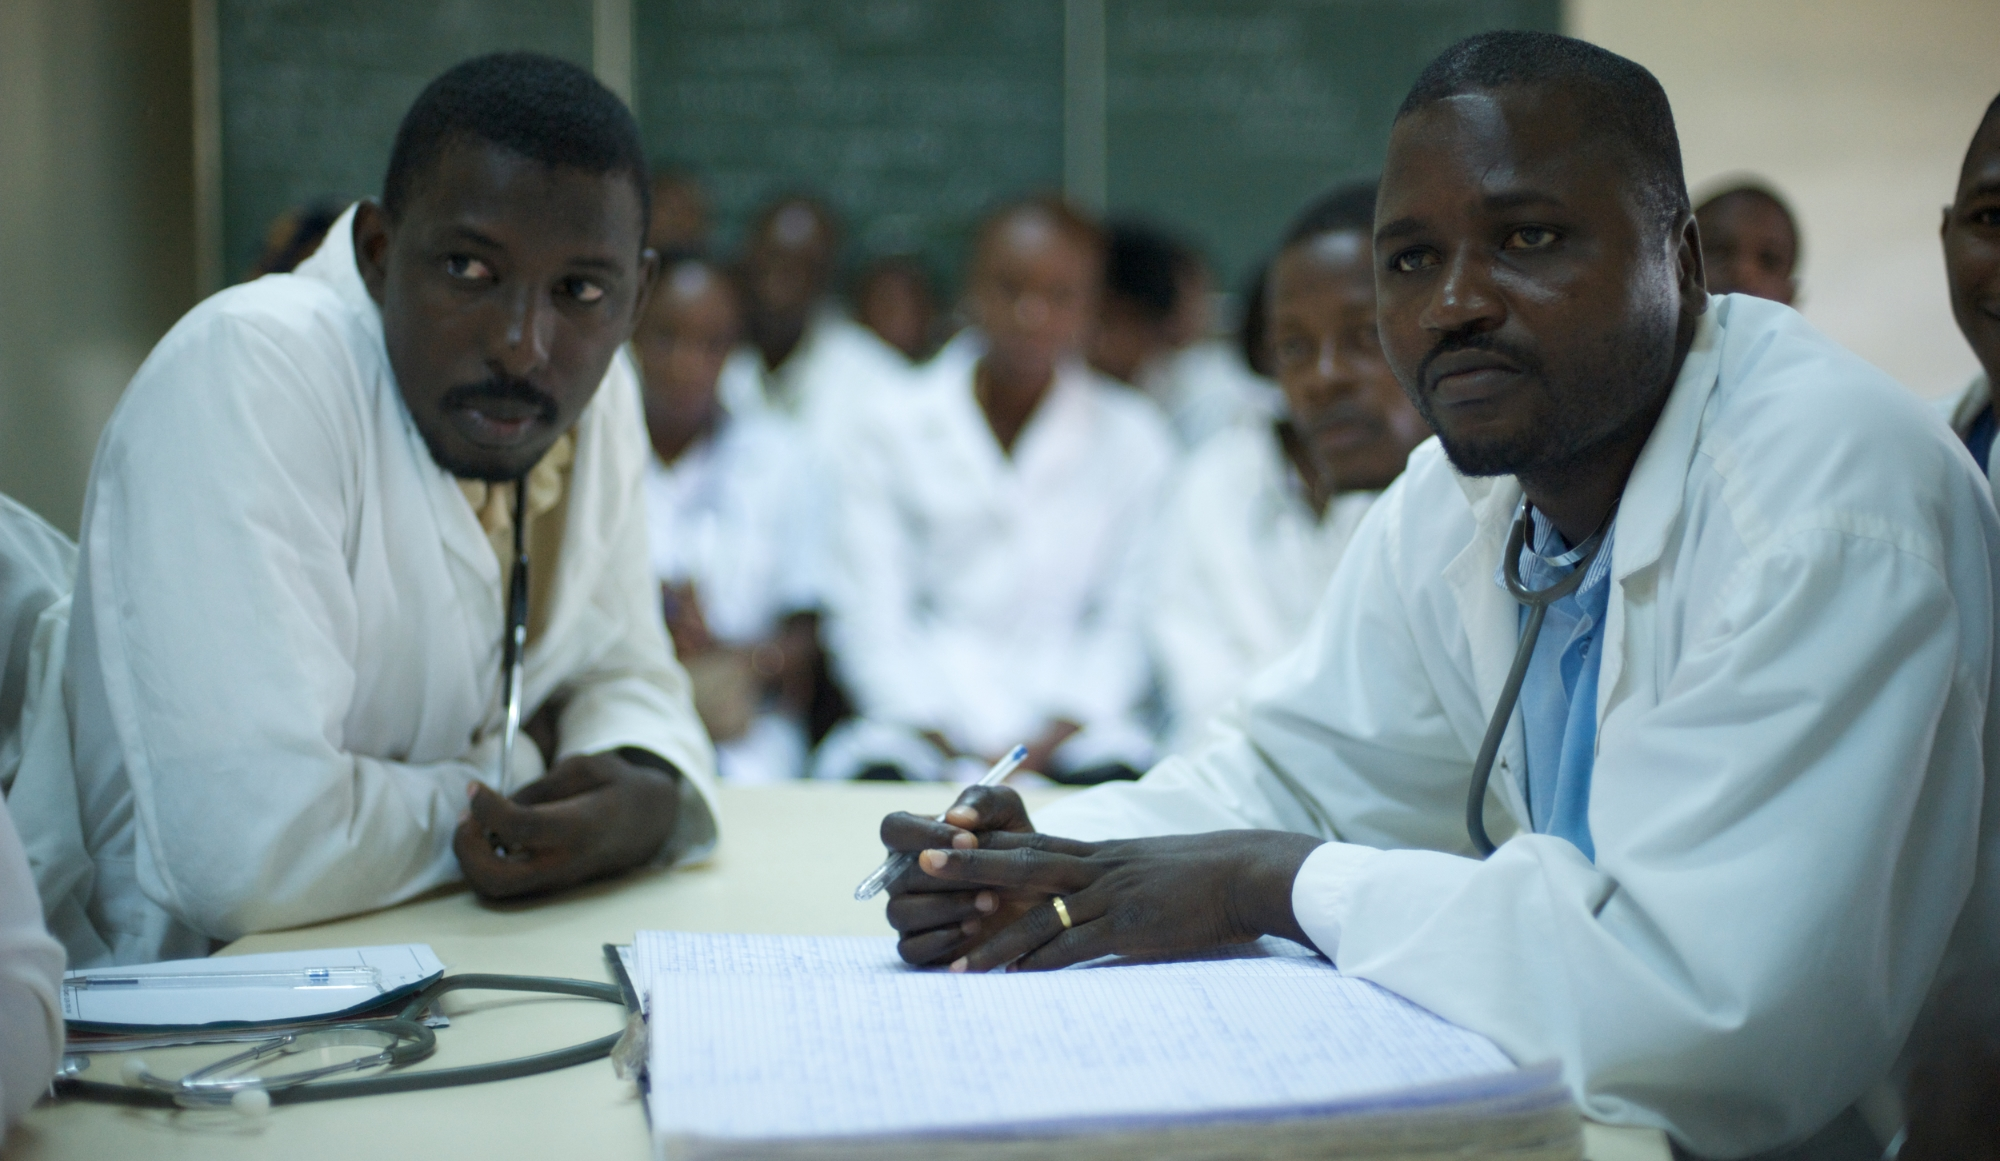 Pediatric doctors at Donka Hospital in Conakry, Guinea